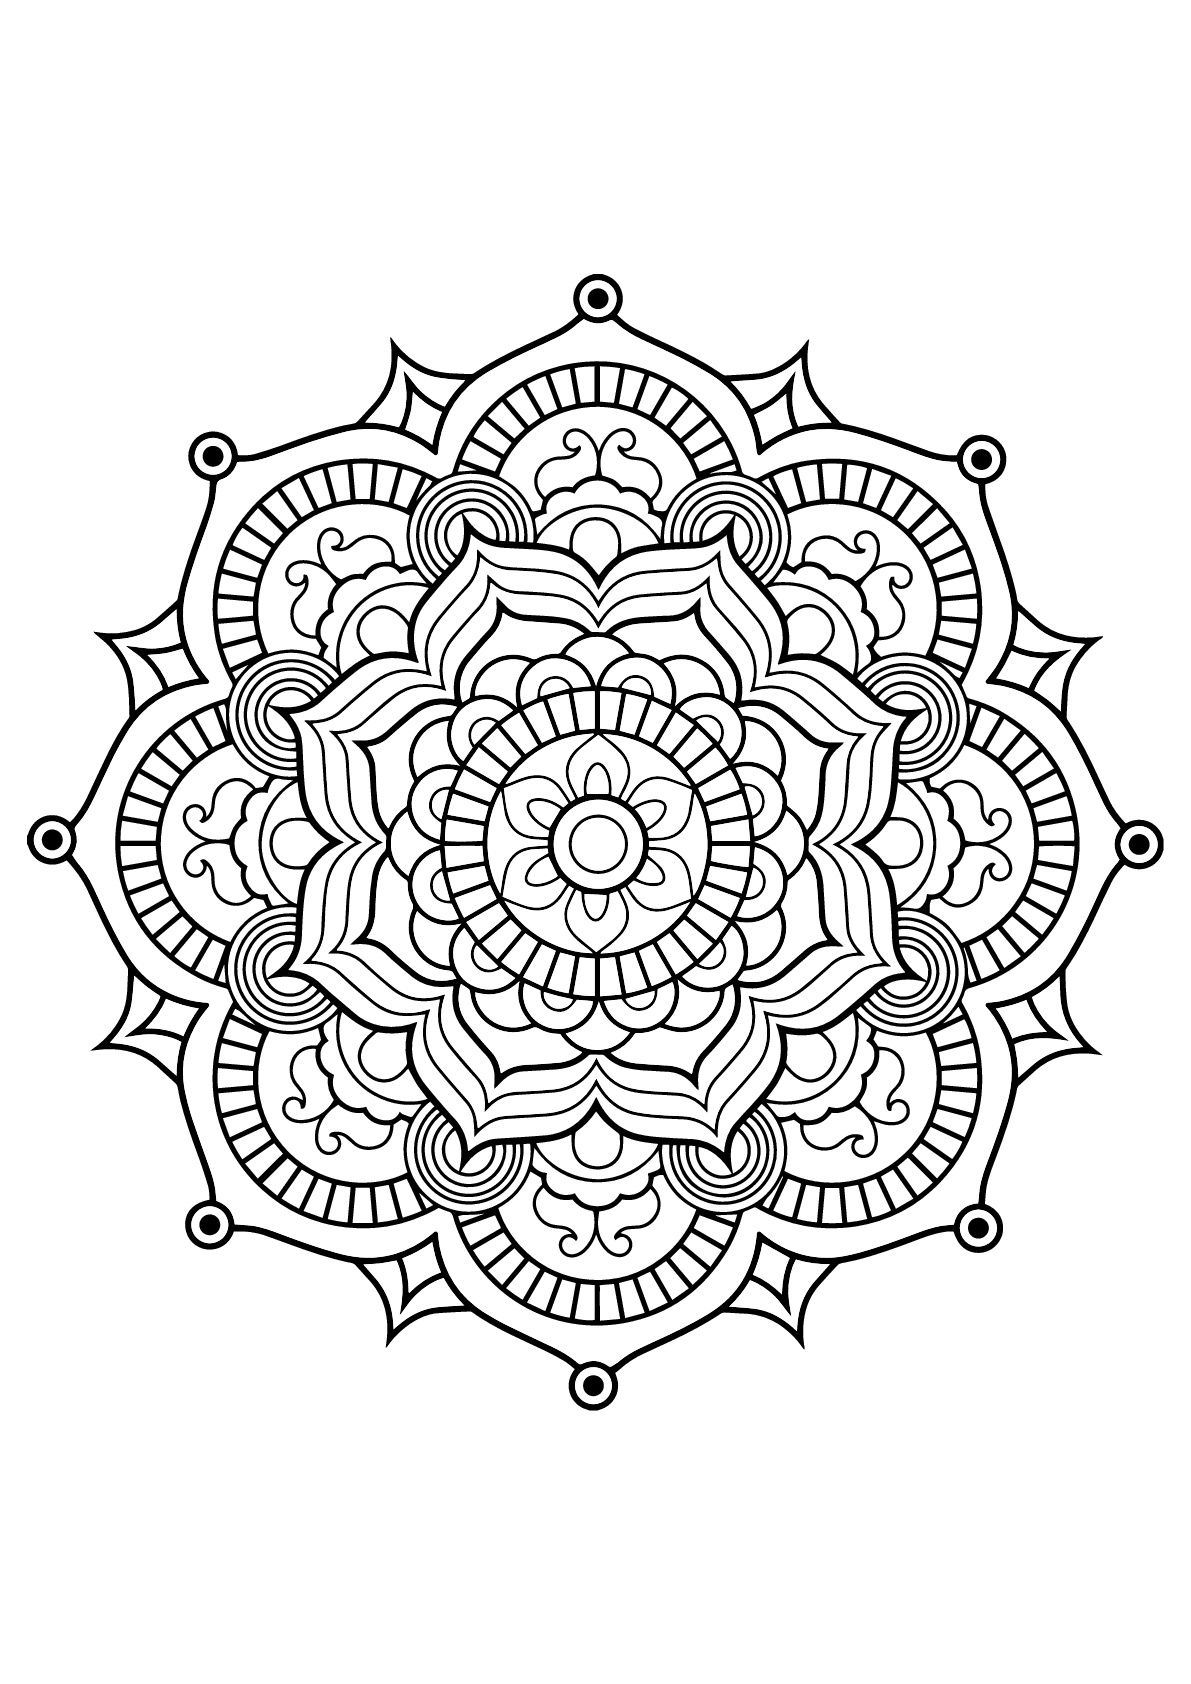 Mandala with vegetal patterns from Free Coloring book for